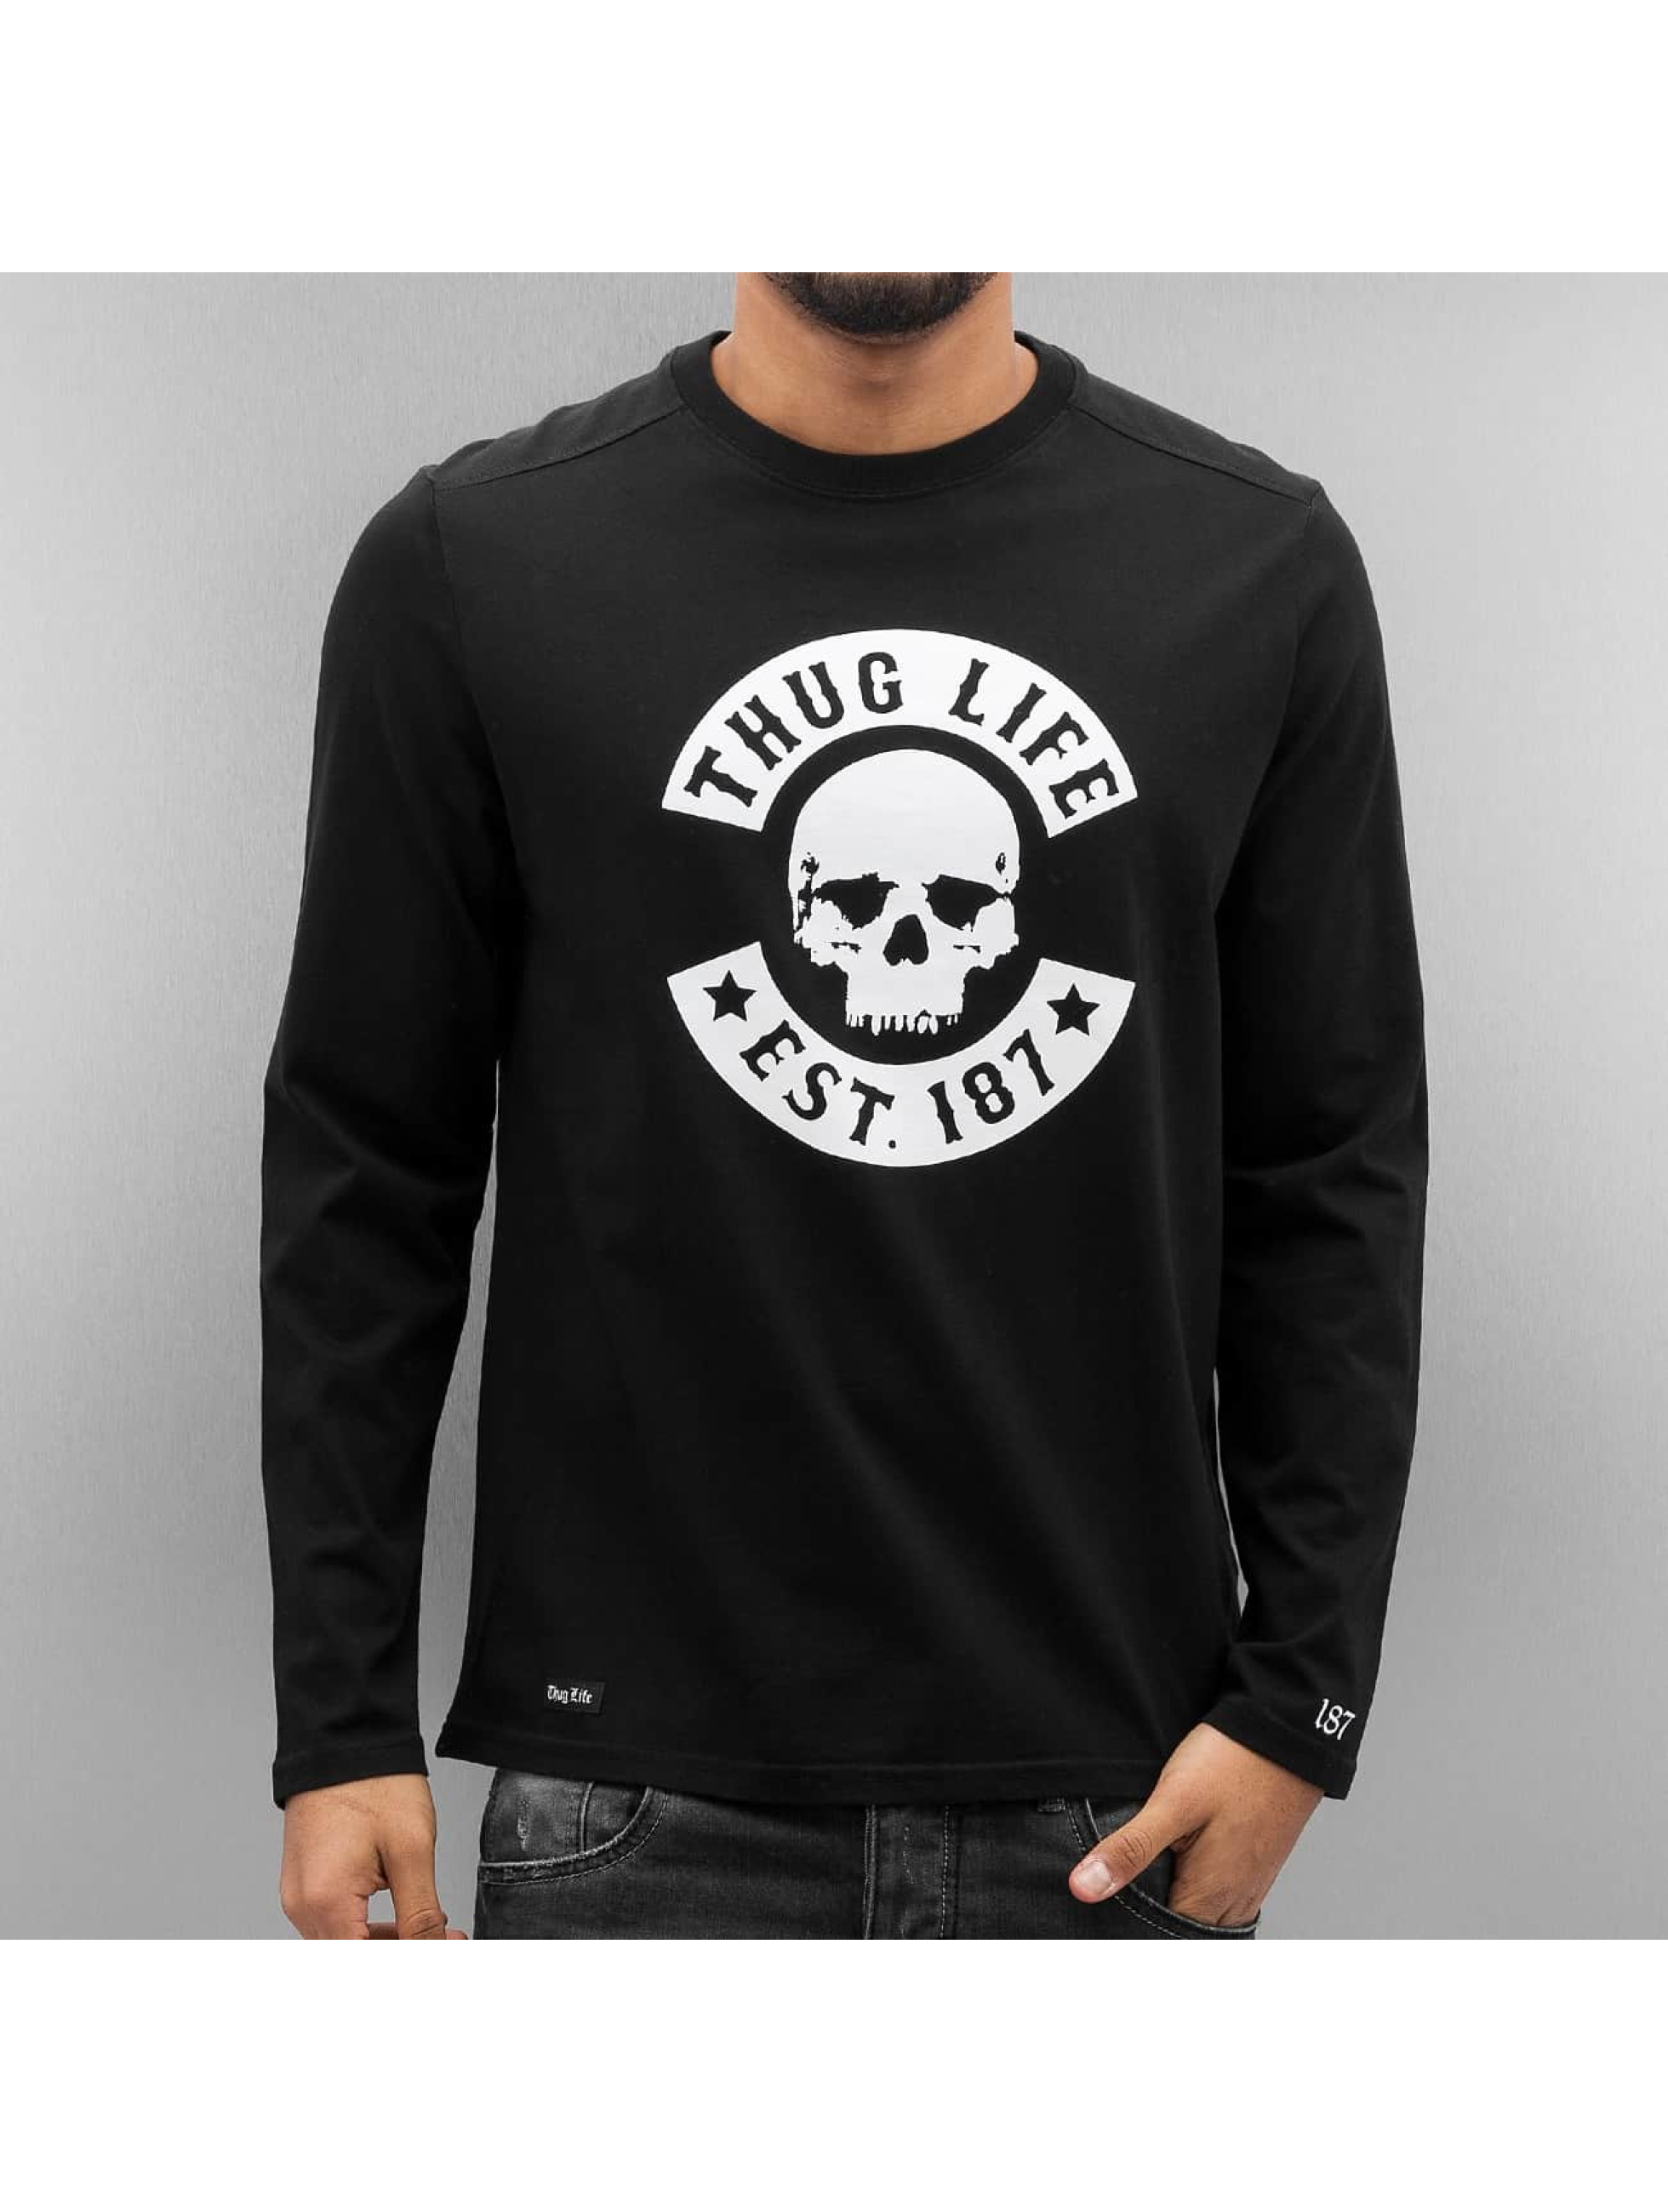 Thug Life / Longsleeve Z-Ro in black 3XL